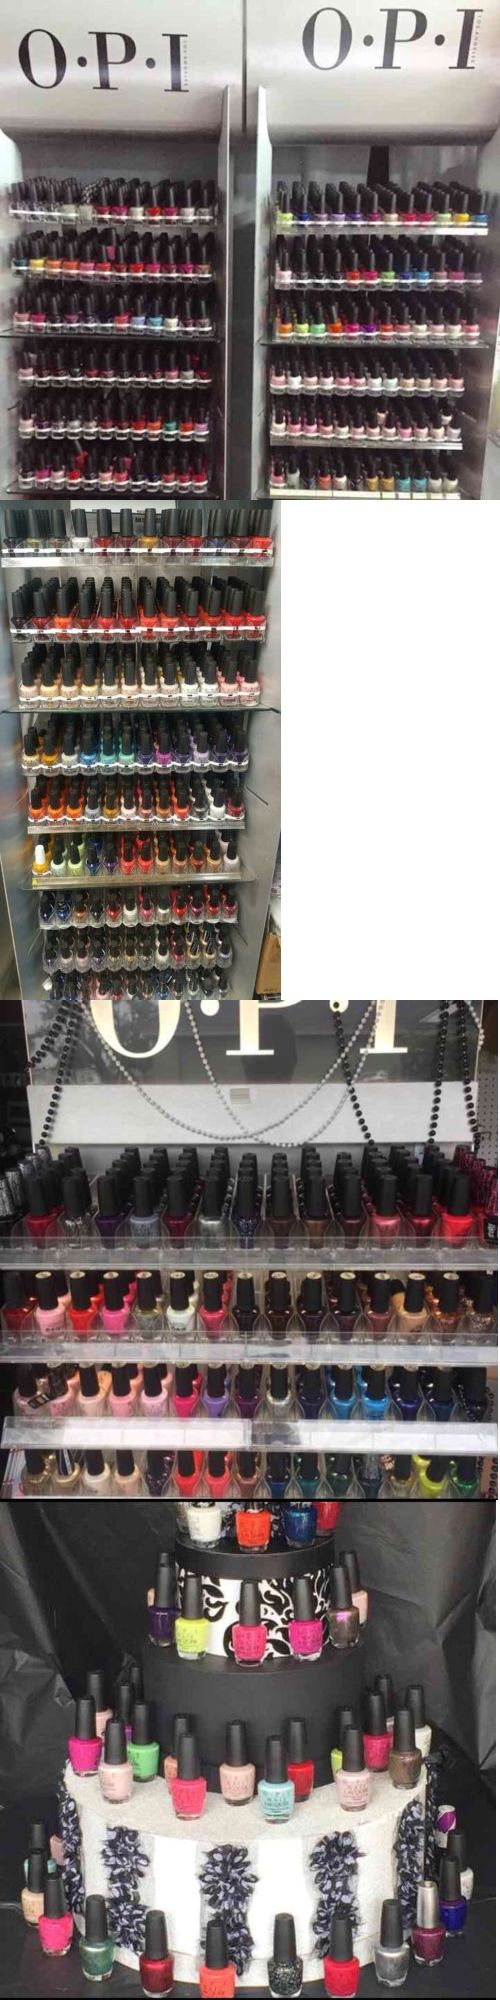 Nails: Opi Nail Polish Lot Of 100 Assorted Colors - 0.5 Oz Each New Authentic Wholesale -> BUY IT NOW ONLY: $249.99 on eBay!